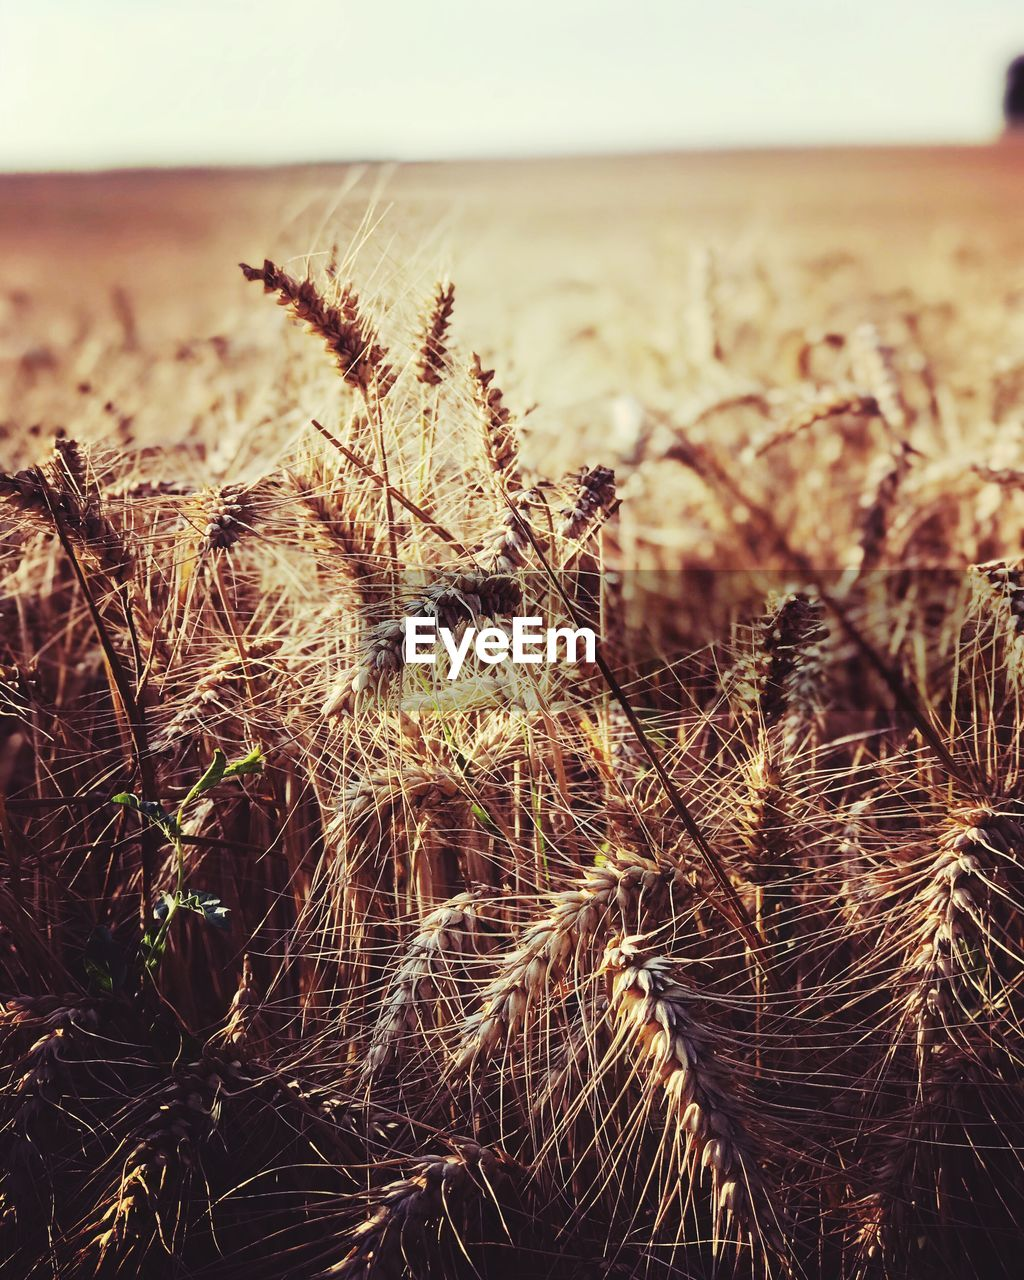 plant, nature, growth, focus on foreground, tranquility, close-up, no people, beauty in nature, land, day, field, sky, outdoors, selective focus, dry, landscape, grass, crop, environment, scenics - nature, timothy grass